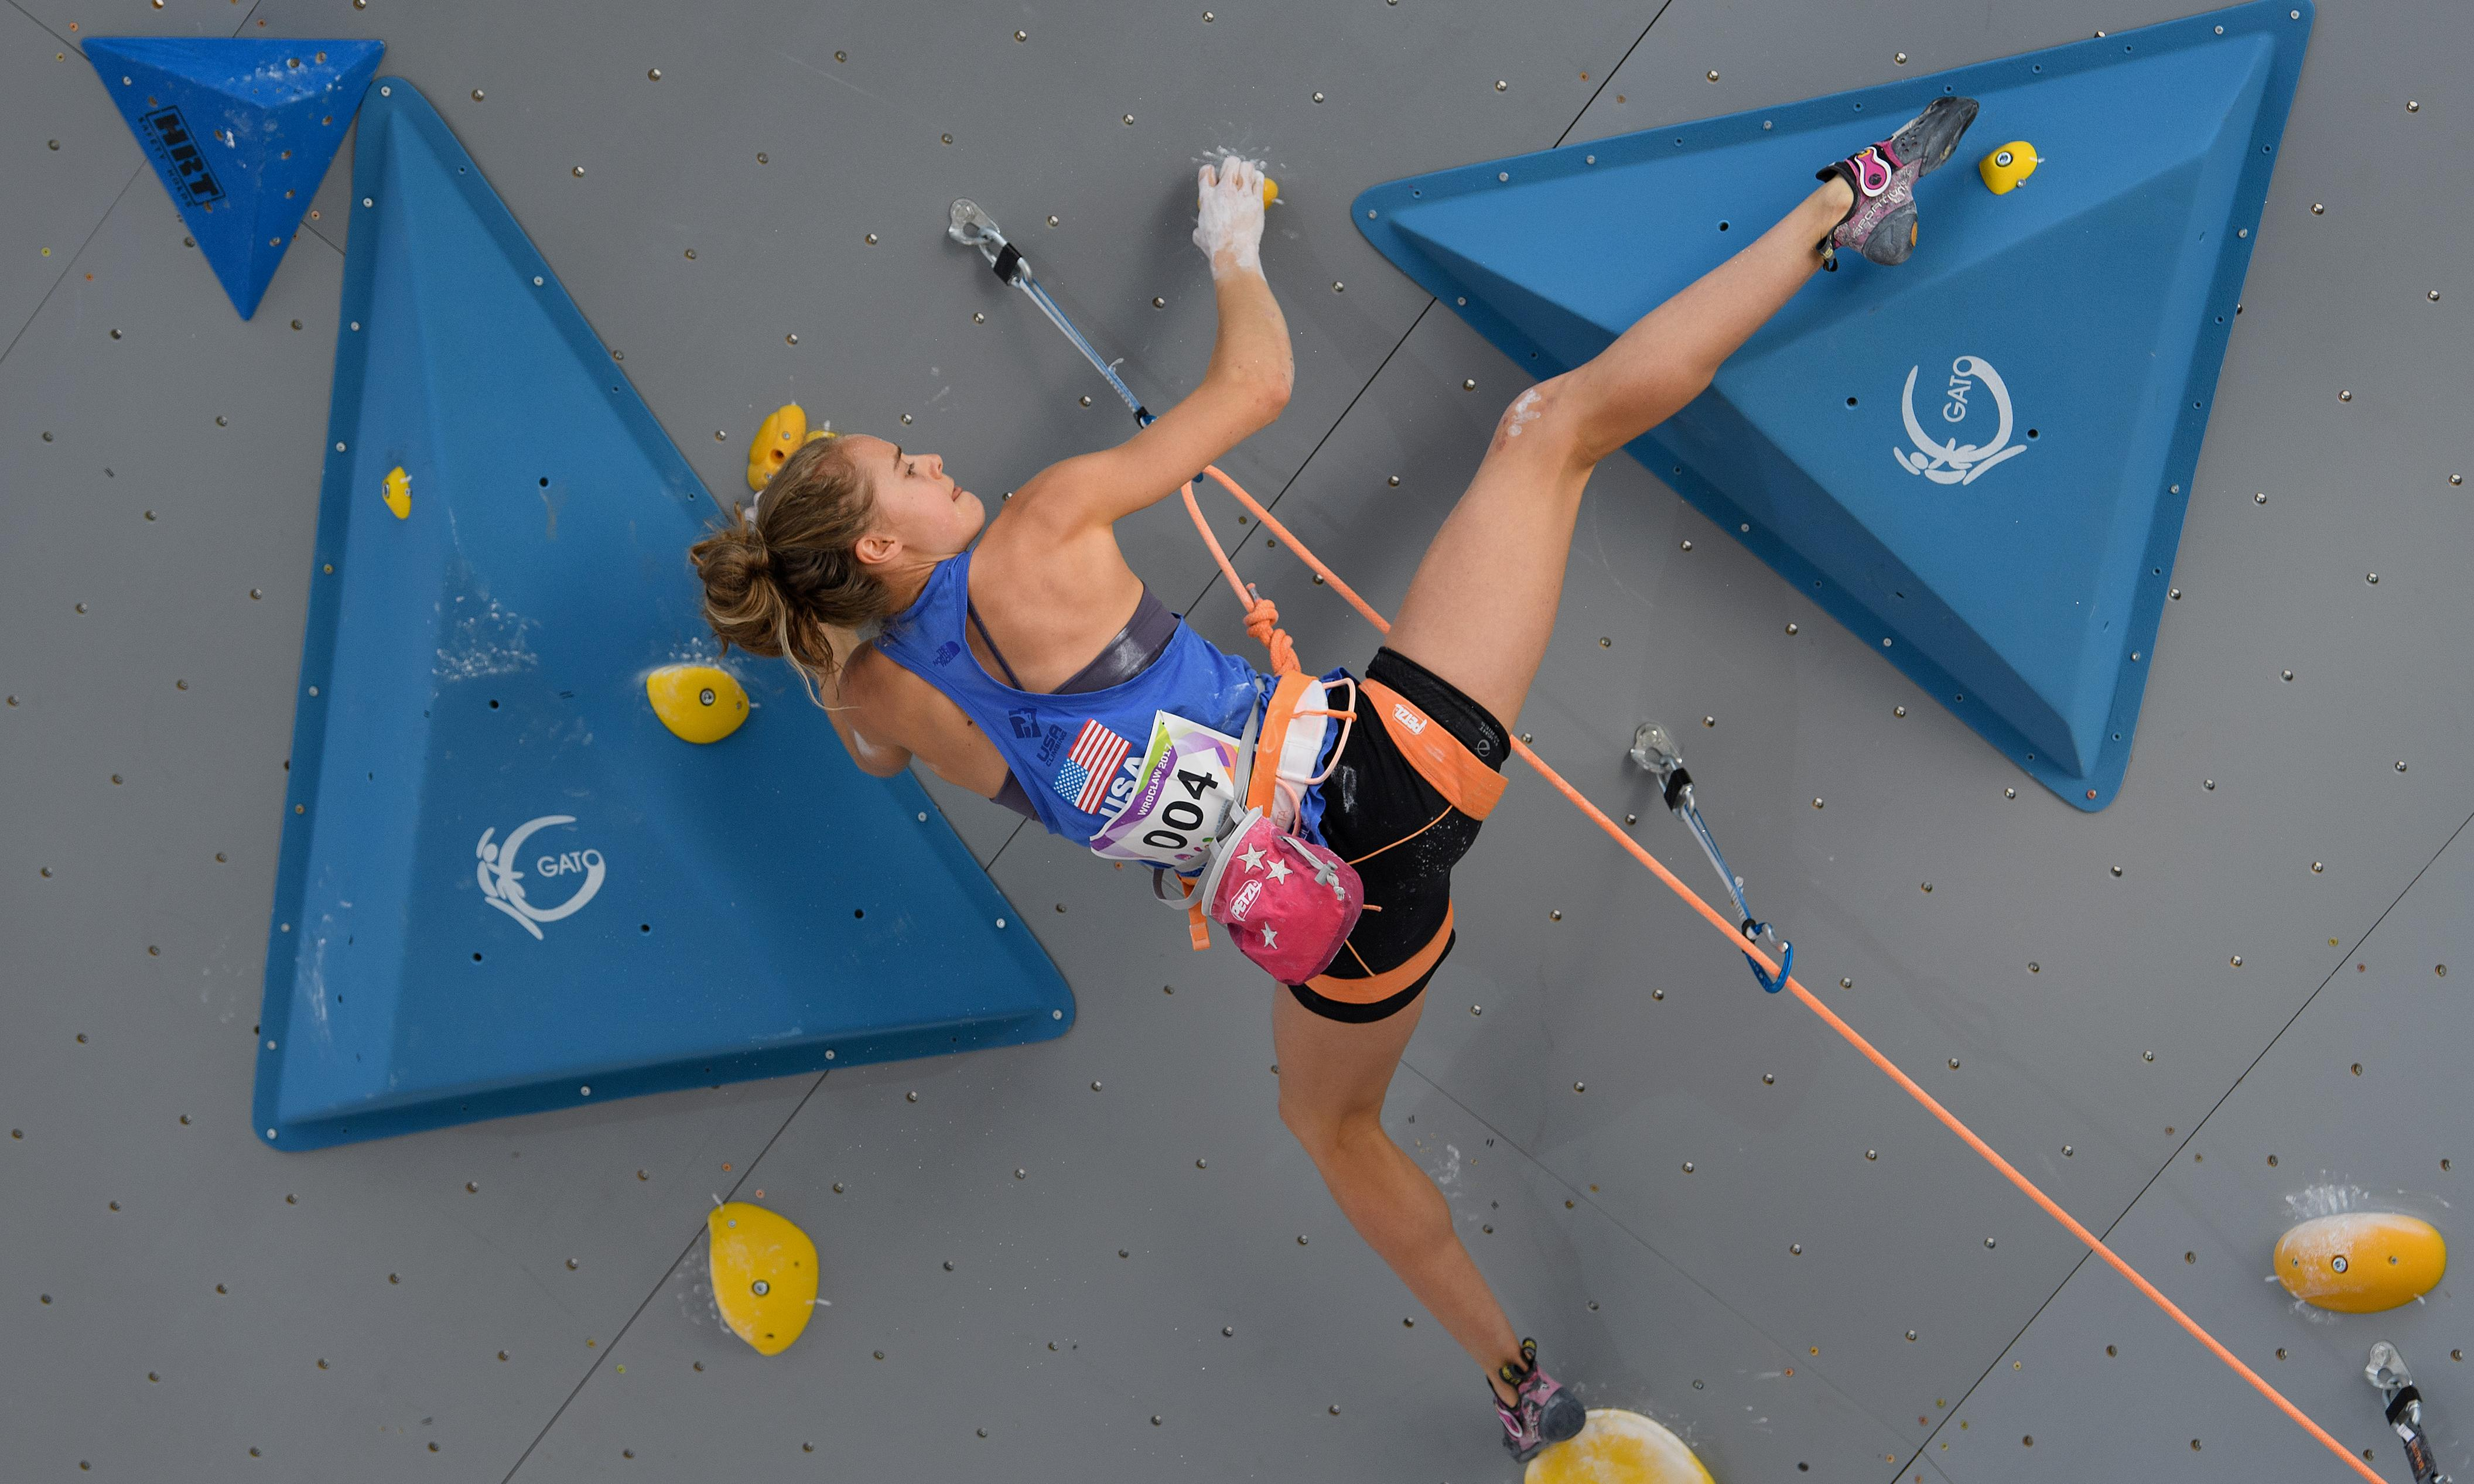 'She sees possibility': How a teen rock climber shattered a gender barrier